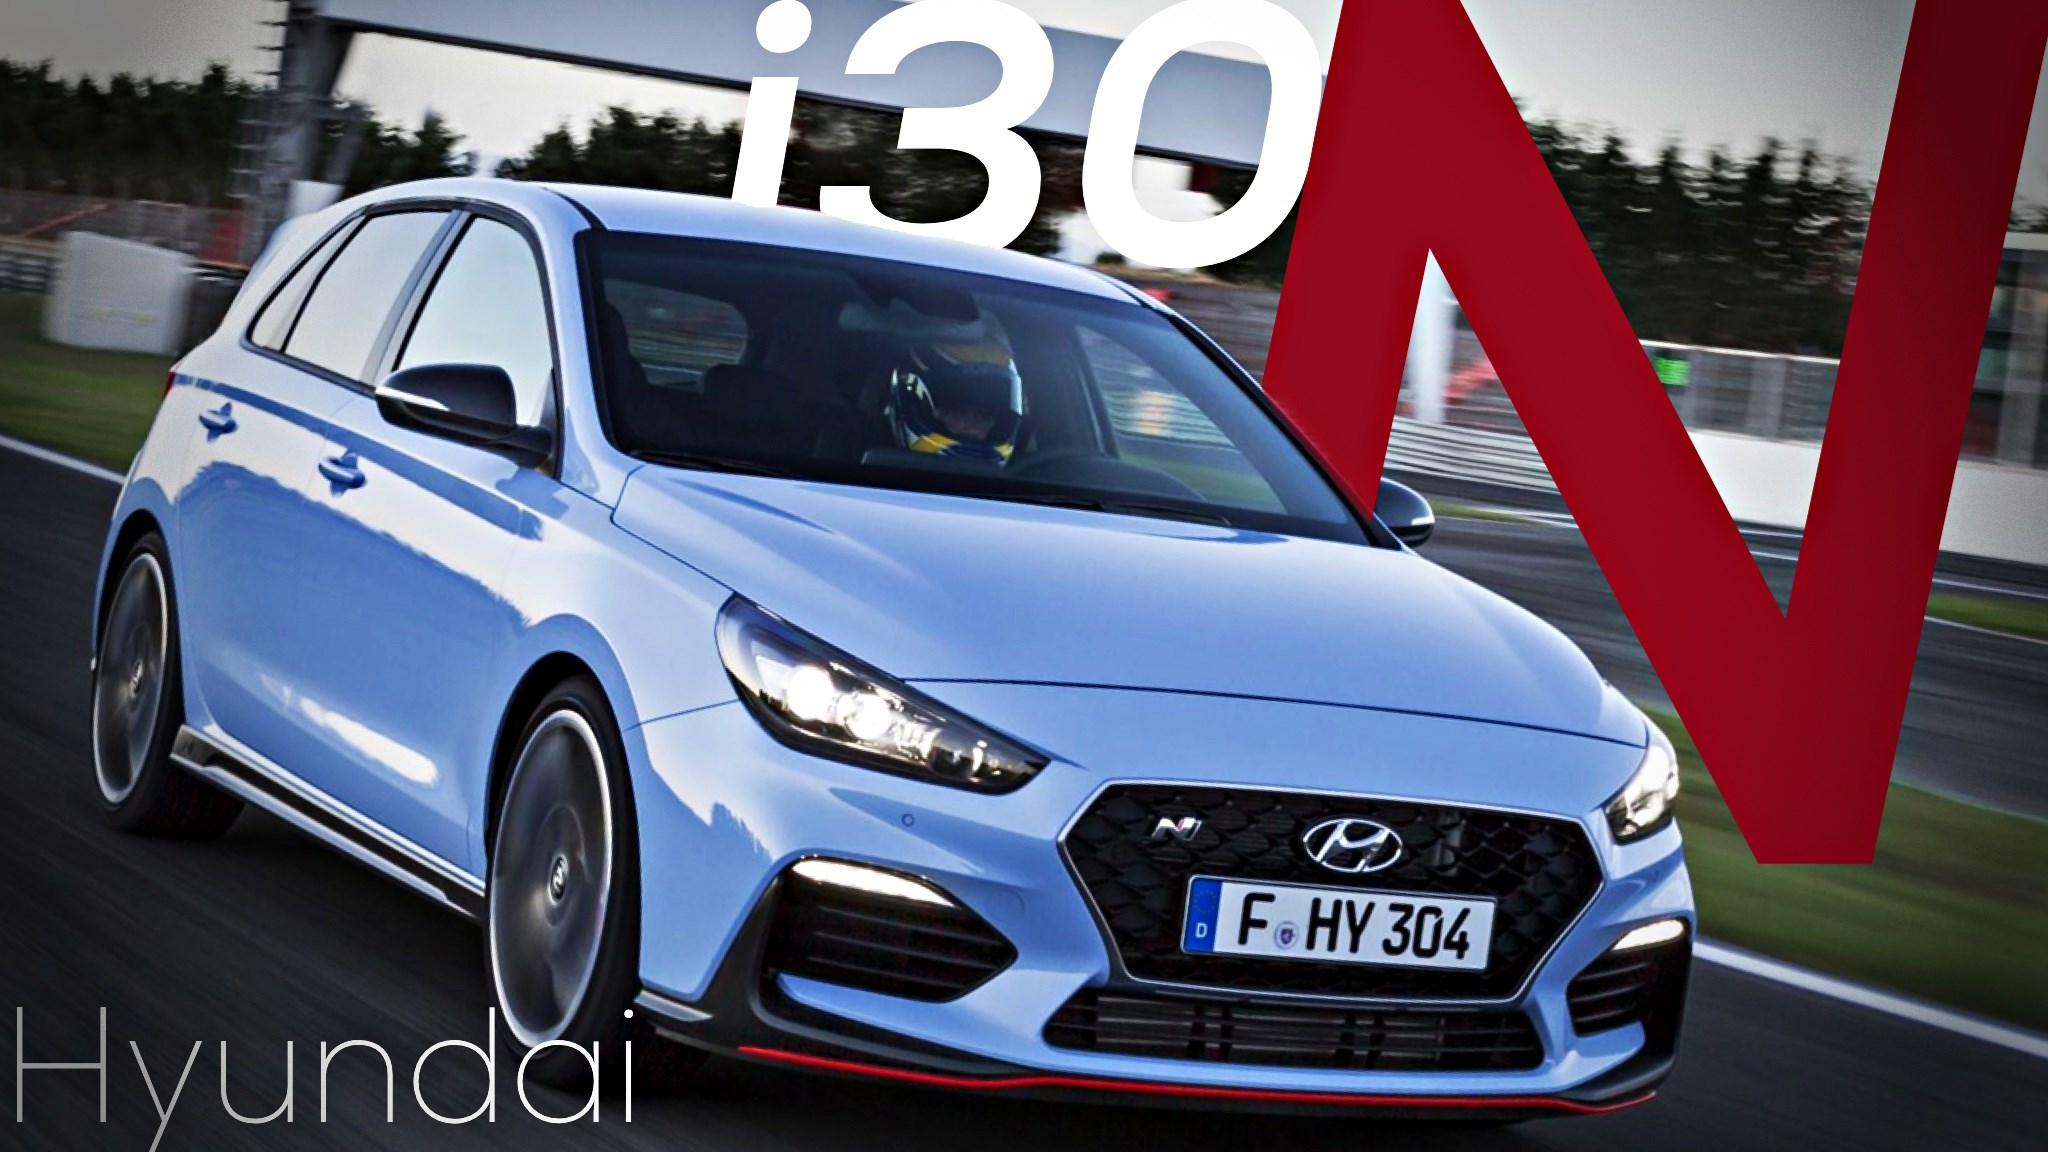 Hyundai Reveals The i30 N, Their First Real Hot Hatch